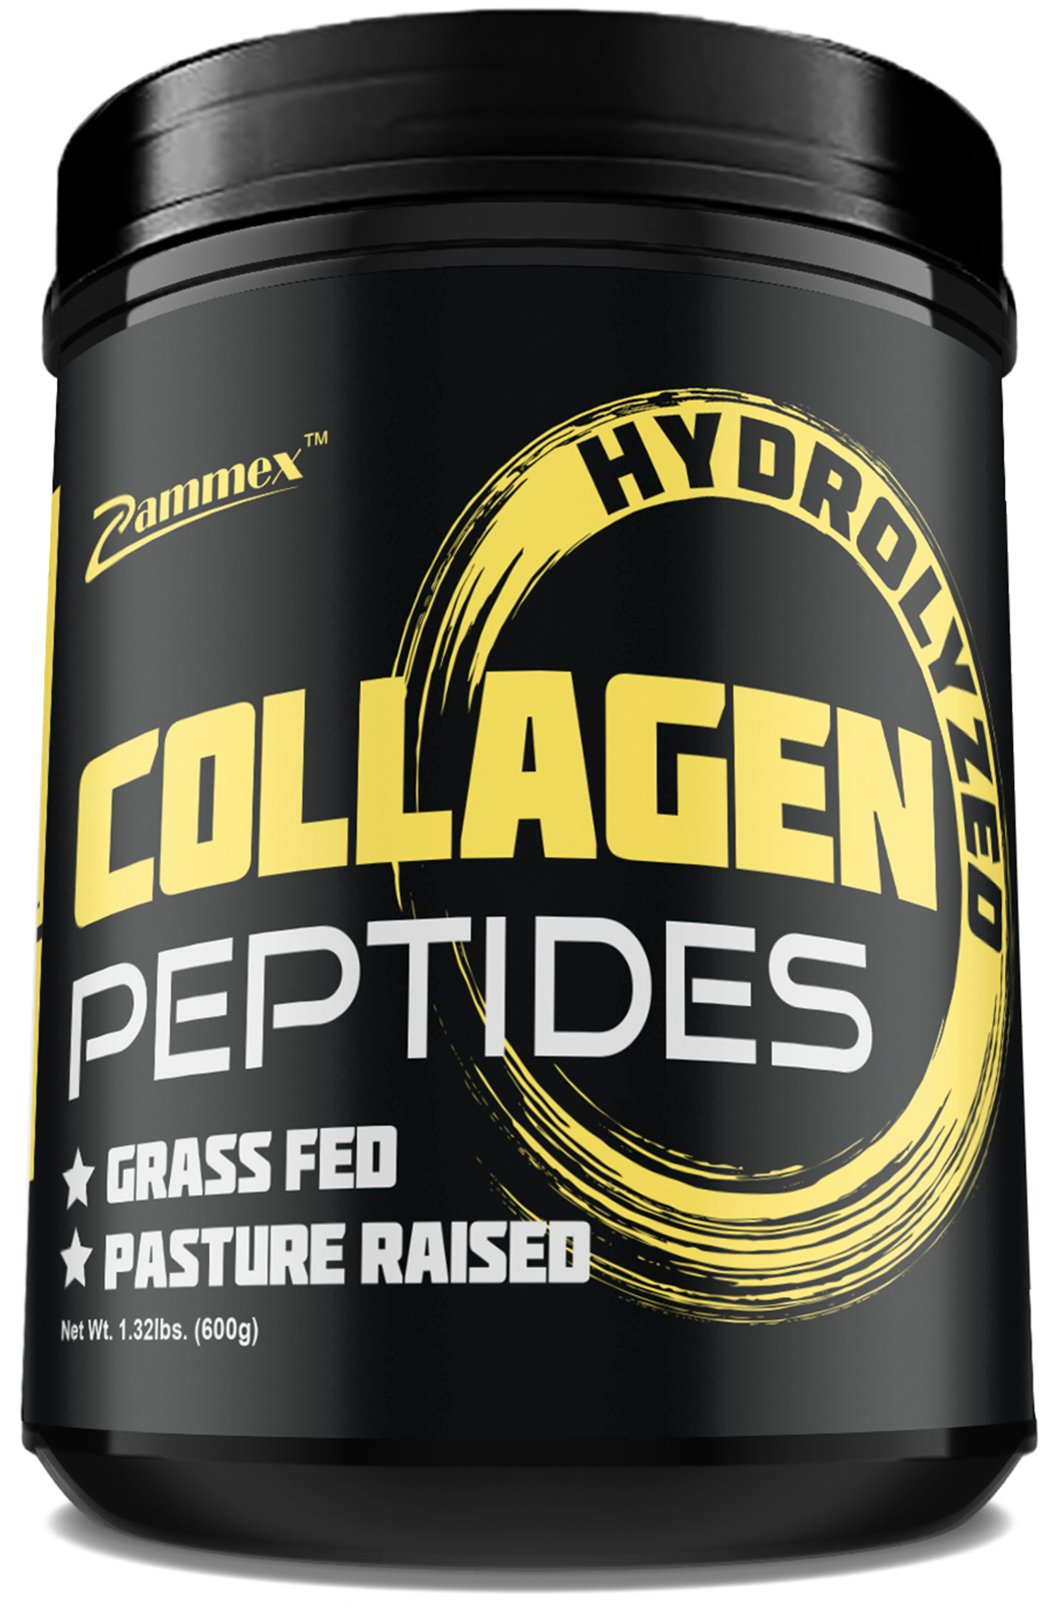 Premium Hydrolyzed Collagen Peptides(21oz) - Best Value|Non-GMO, Grass-Fed, Gluten-Free, Pasture Raised Cattle|Unflavored and Easy to Mix - 100% Pure Ultimate Collagen Powder Type 1&3 by Zammex